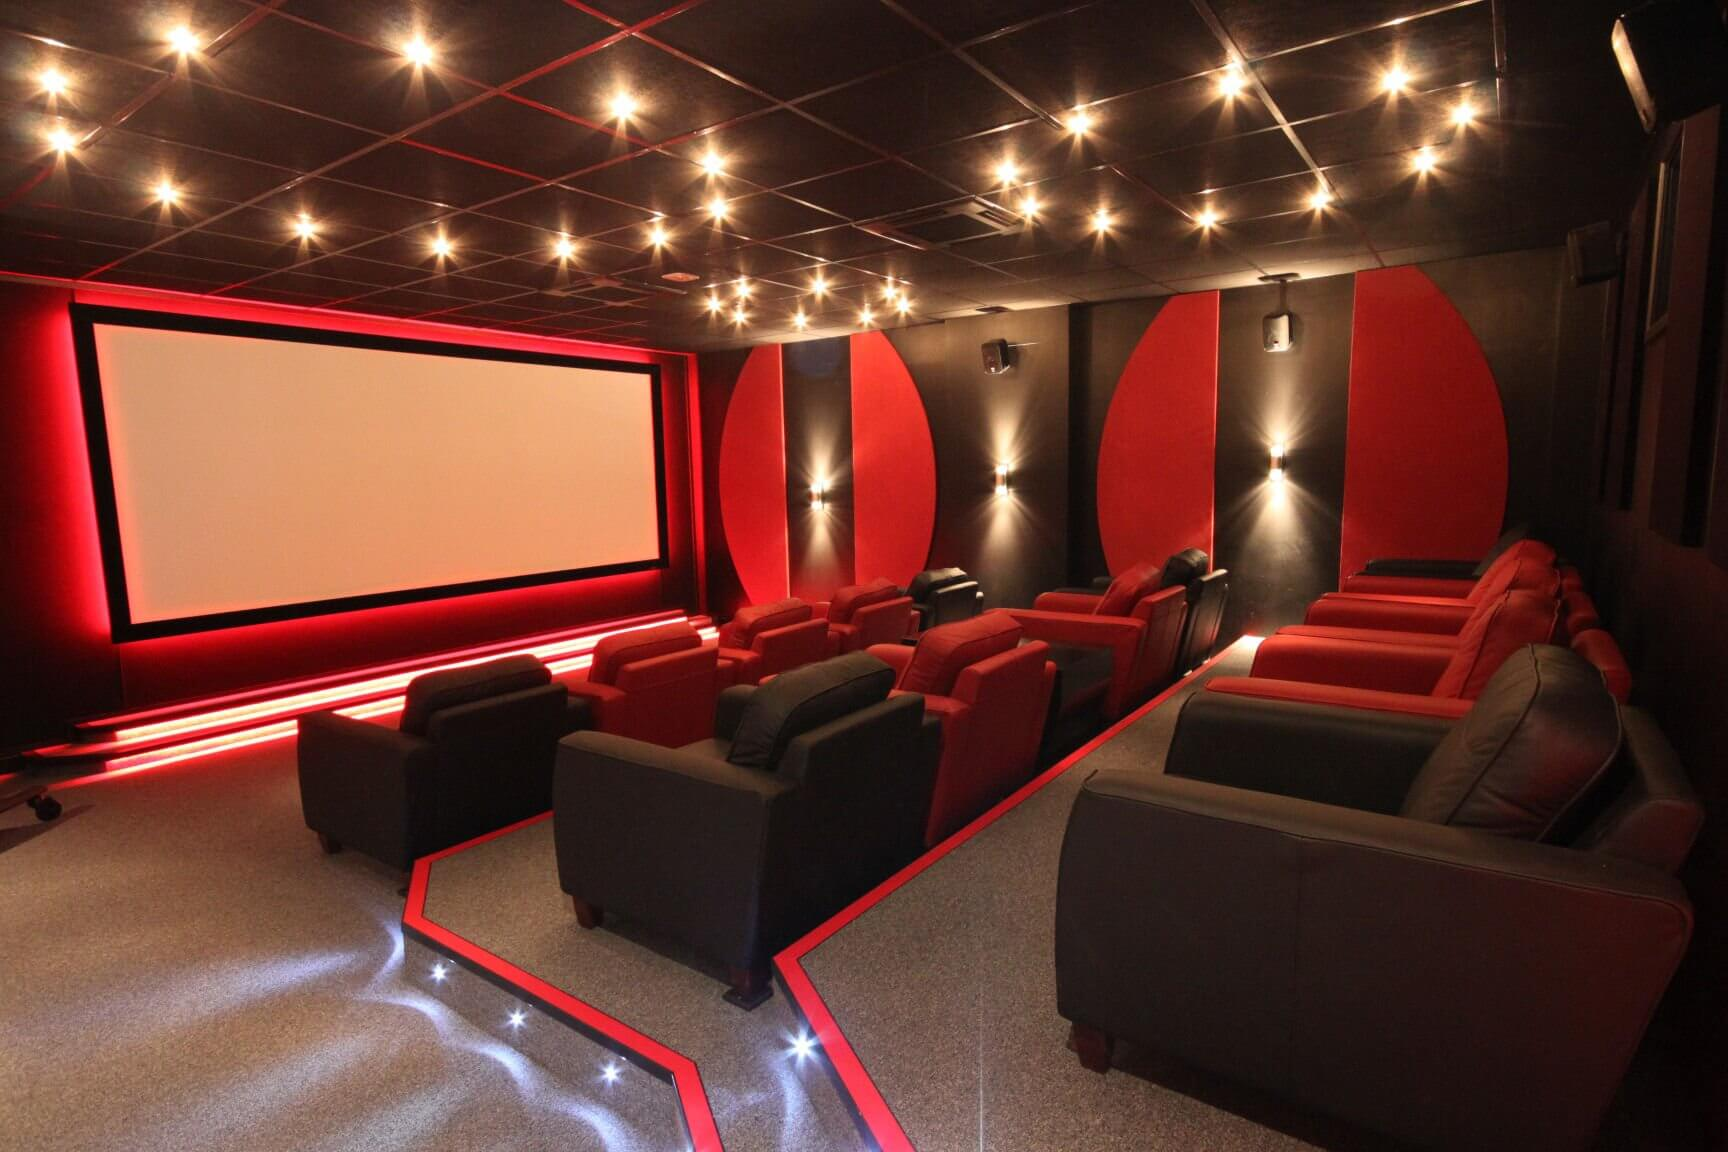 studios home cinema music practice rehearsal rooms. Black Bedroom Furniture Sets. Home Design Ideas